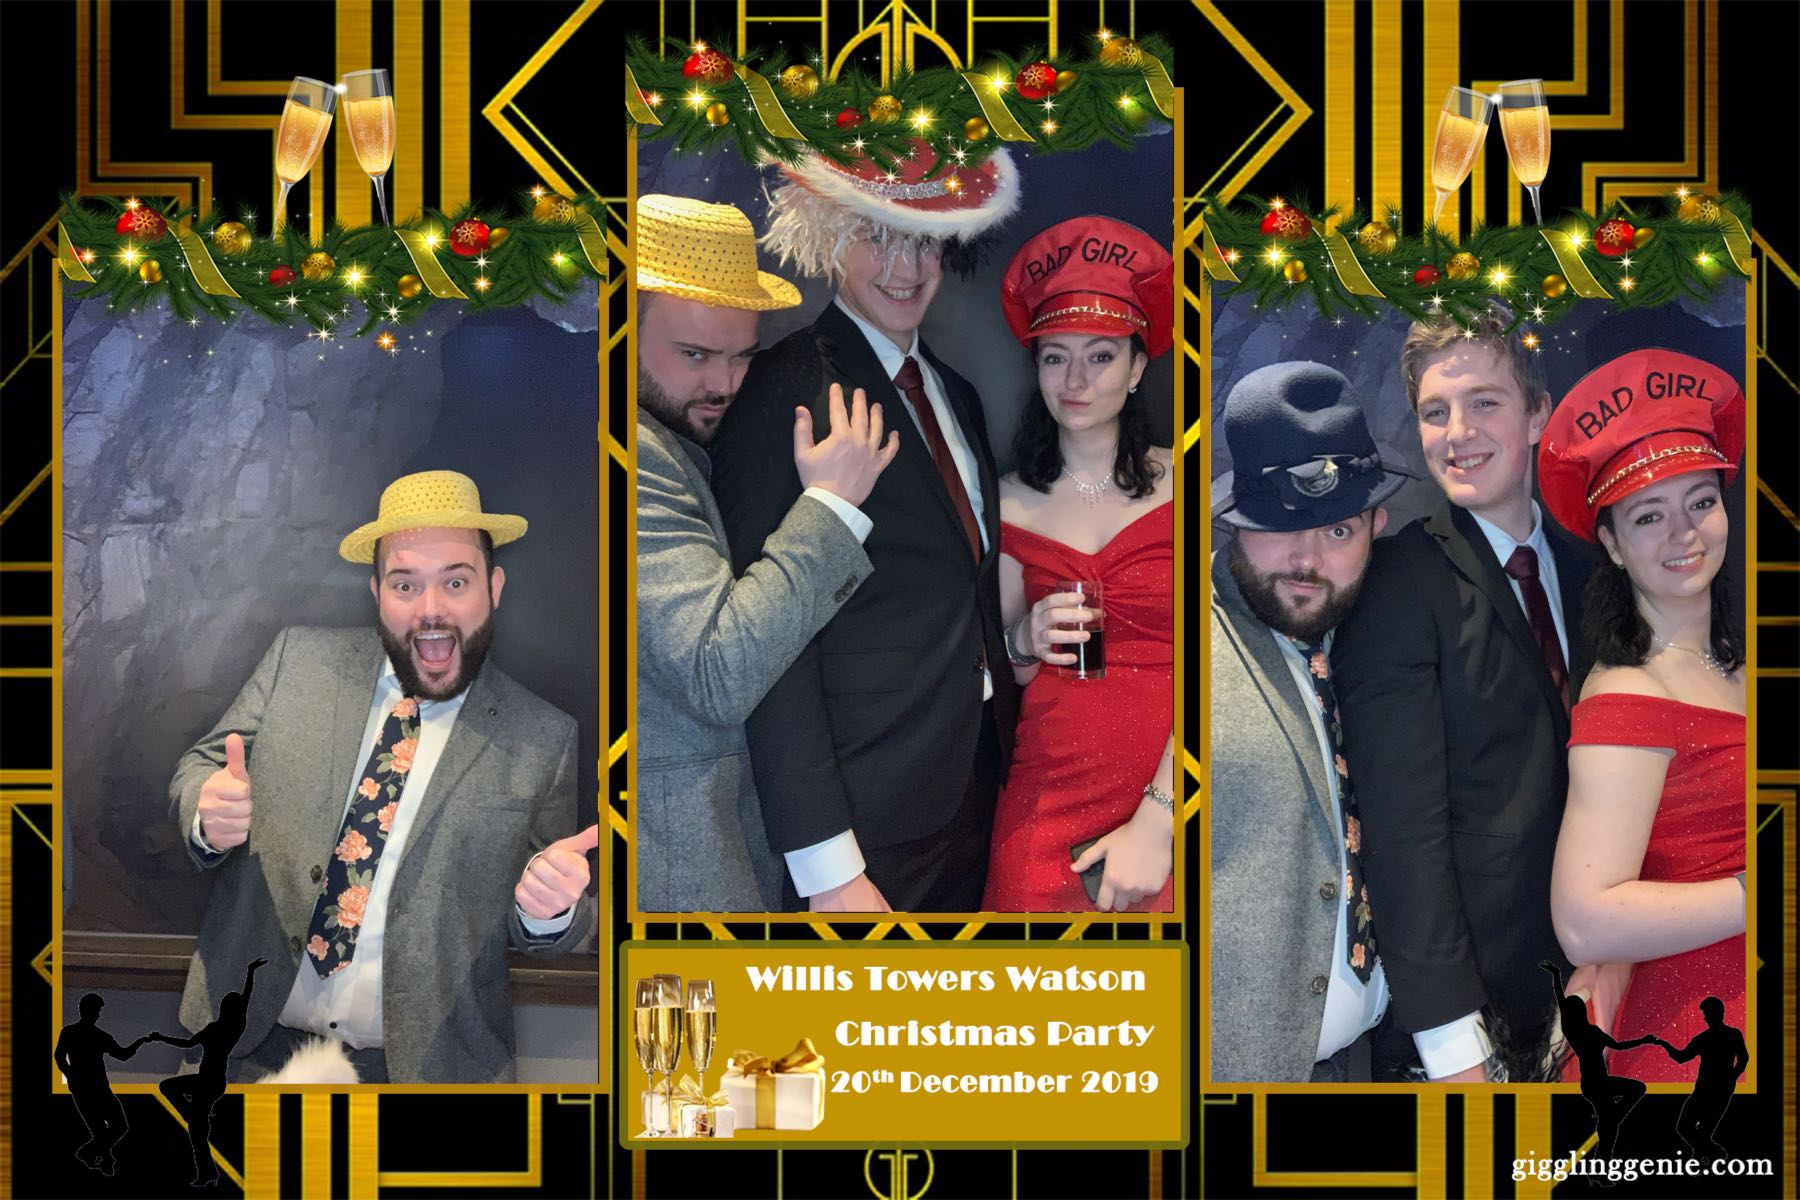 Willis Towers Watson Xmas Party | View more photos from the event at gallery.gigglinggenie.co.uk/u/GigglingGenie/Willis-Towers-Watson-Xmas-Party